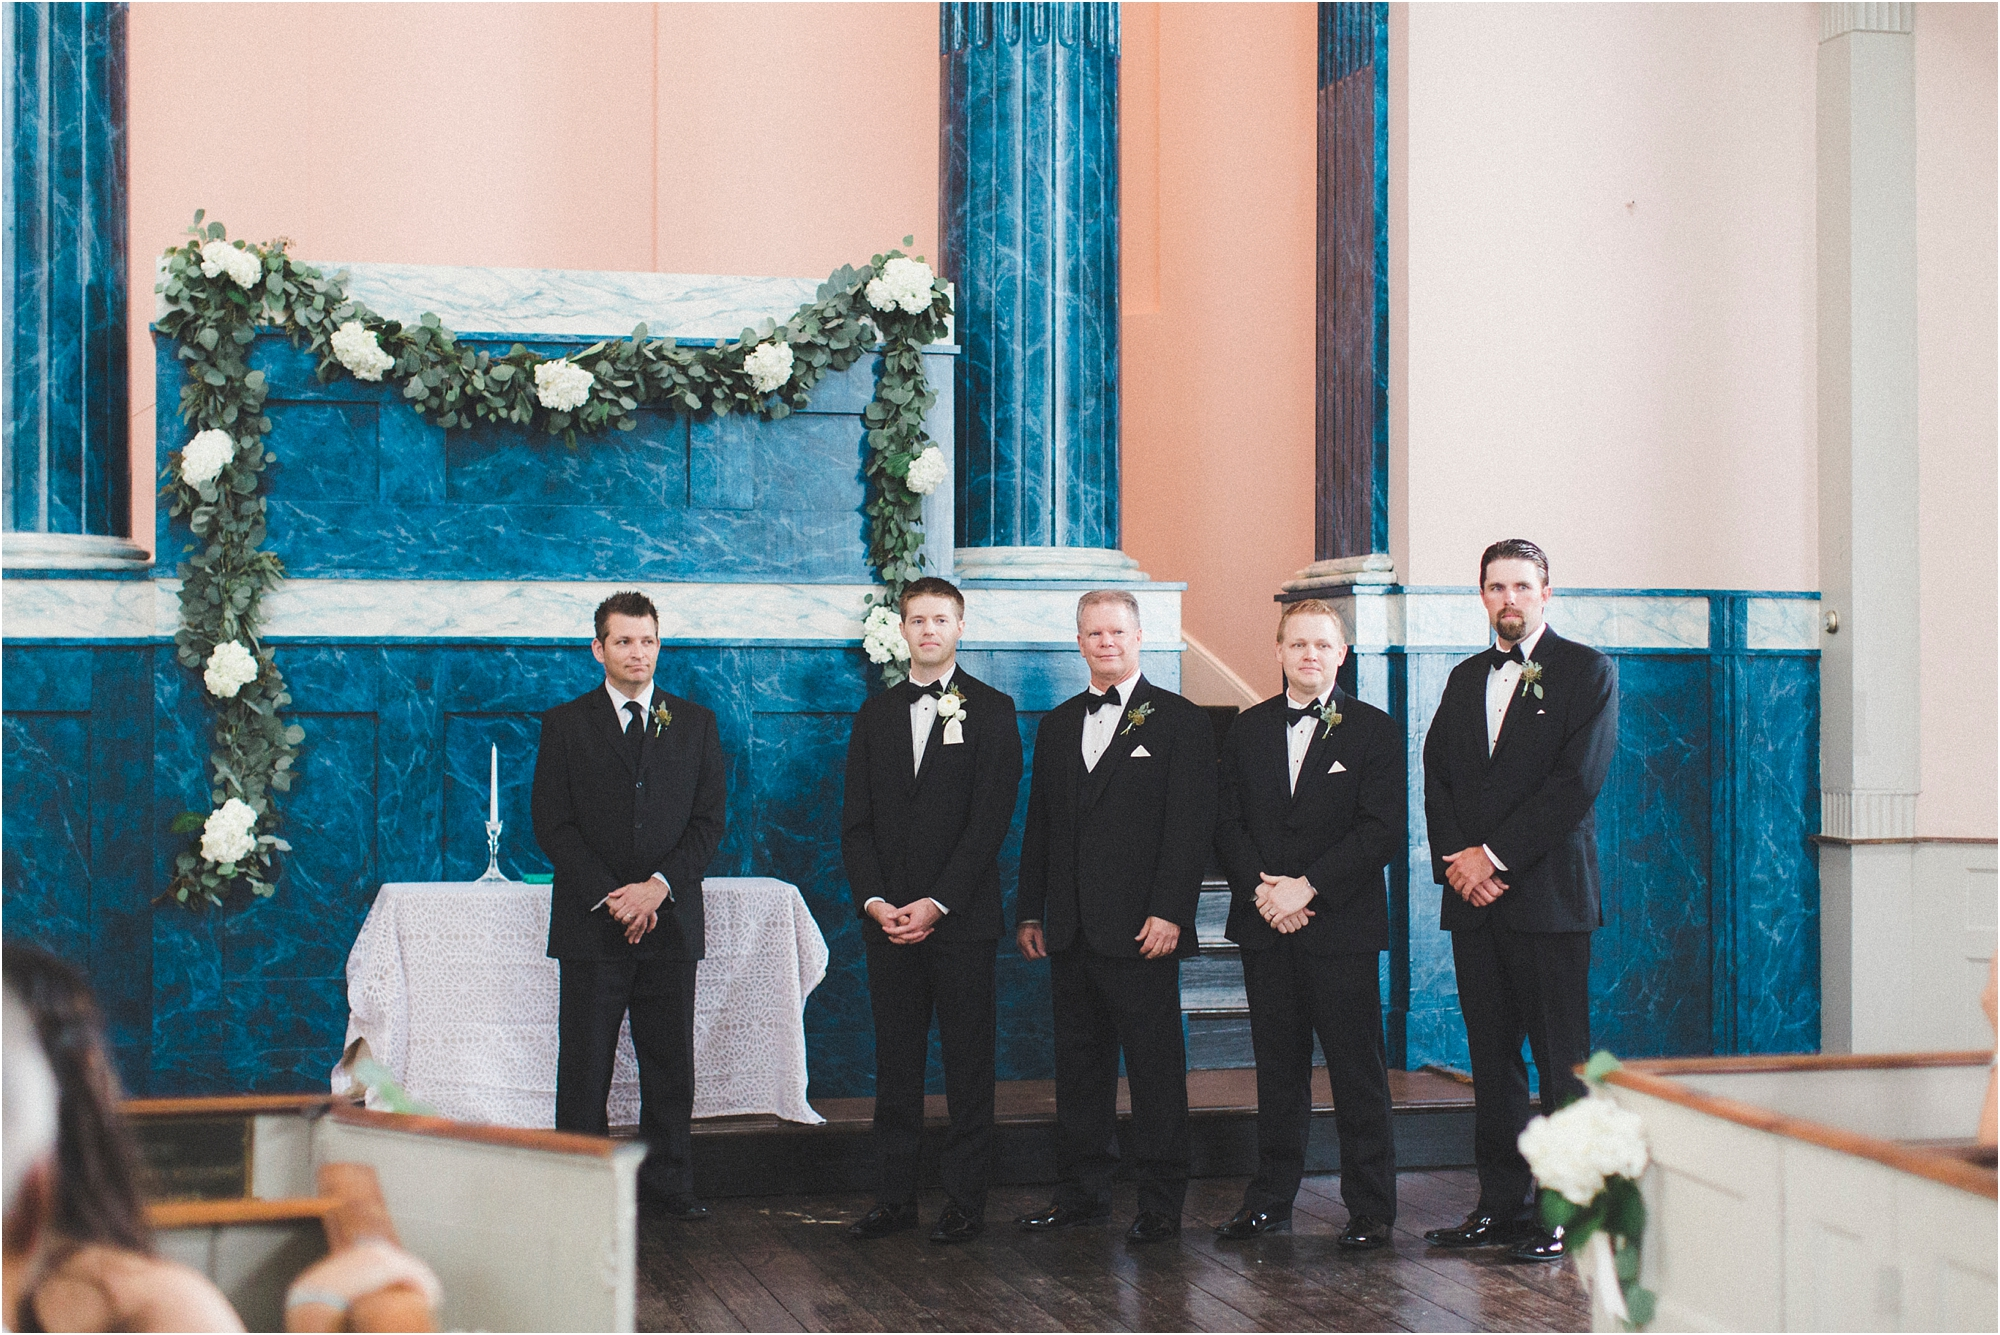 stephanie-yonce-photography-historic-church-virginia-museu-fine-arts-wedding-photos_038.JPG